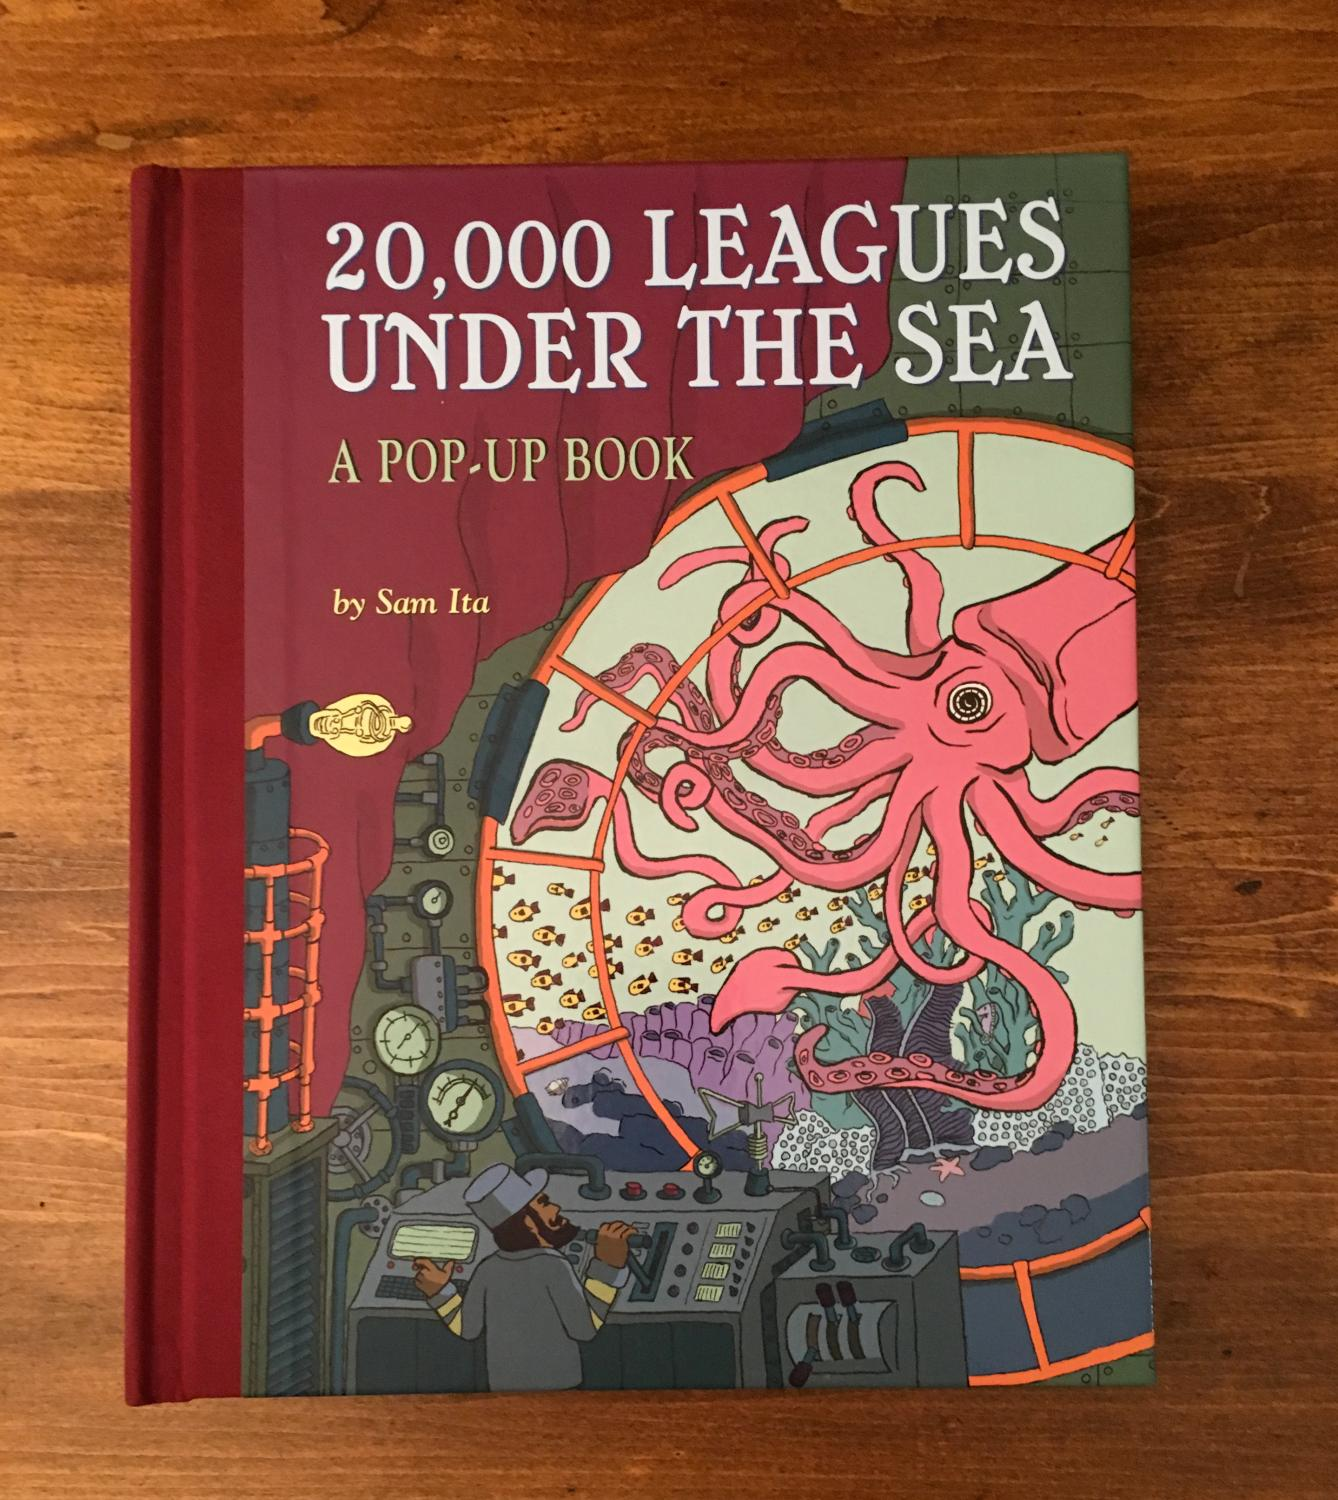 20 000 Leagues Under The Sea Pop Up By Jules Verne Sam Ita New Hardcover 2008 Signed By Illustrator S Jmhunt